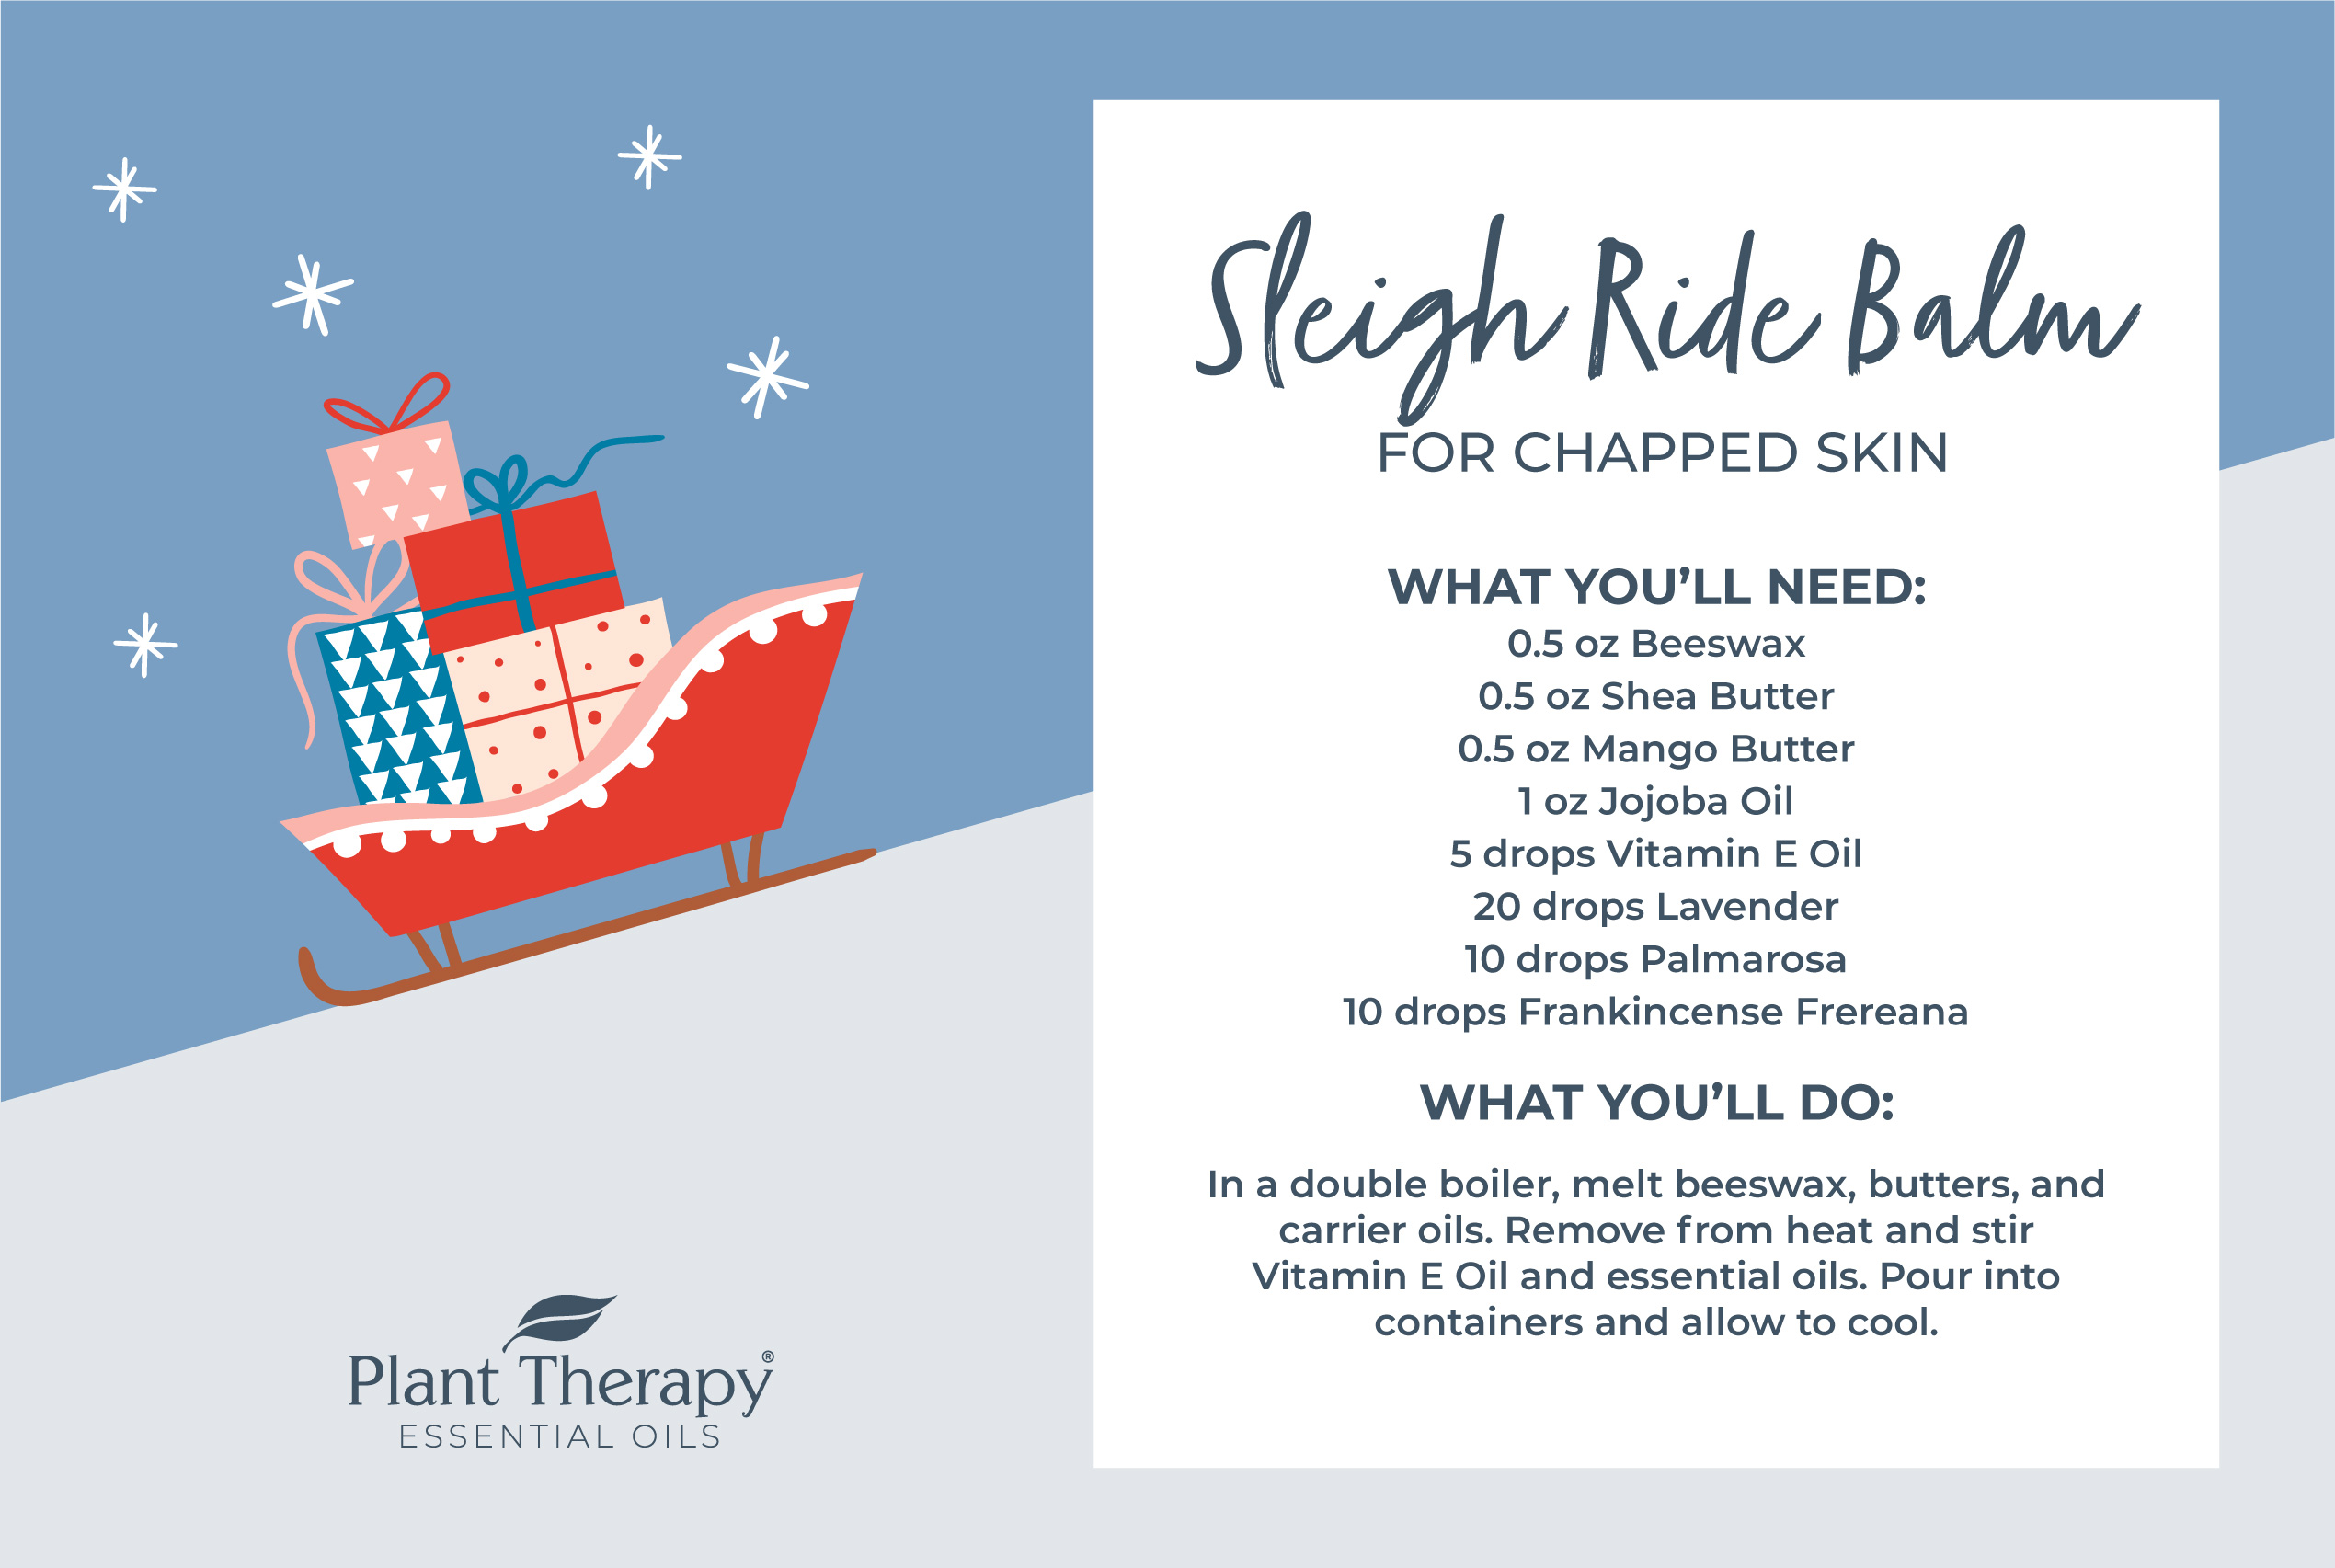 Sleigh Ride Balm for Chapped Skin DIY